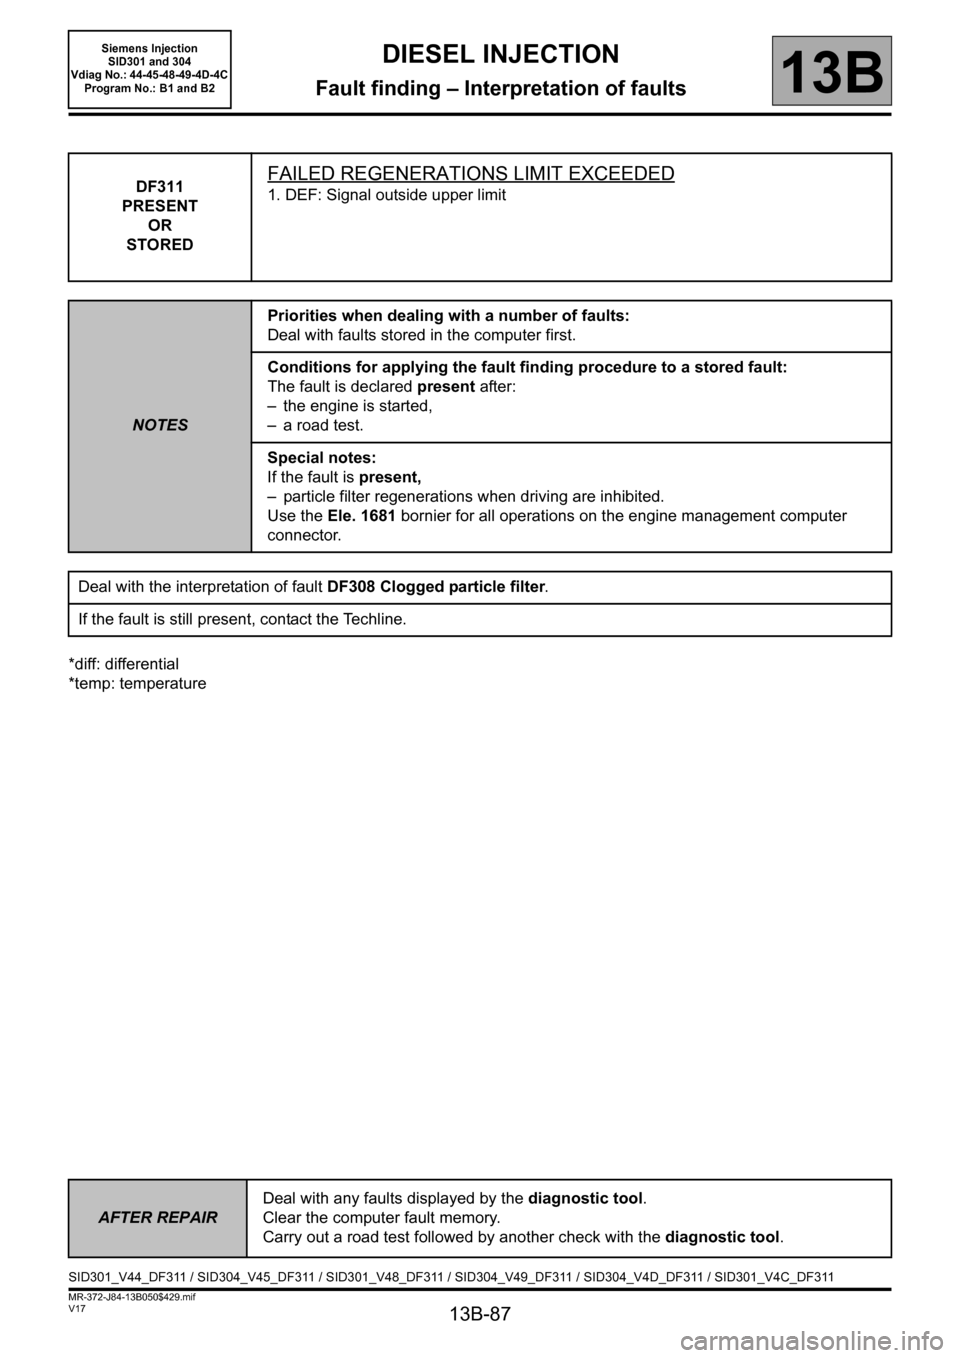 RENAULT SCENIC 2011 J95 / 3.G Engine And Peripherals Siemens Injection Workshop Manual, Page 87